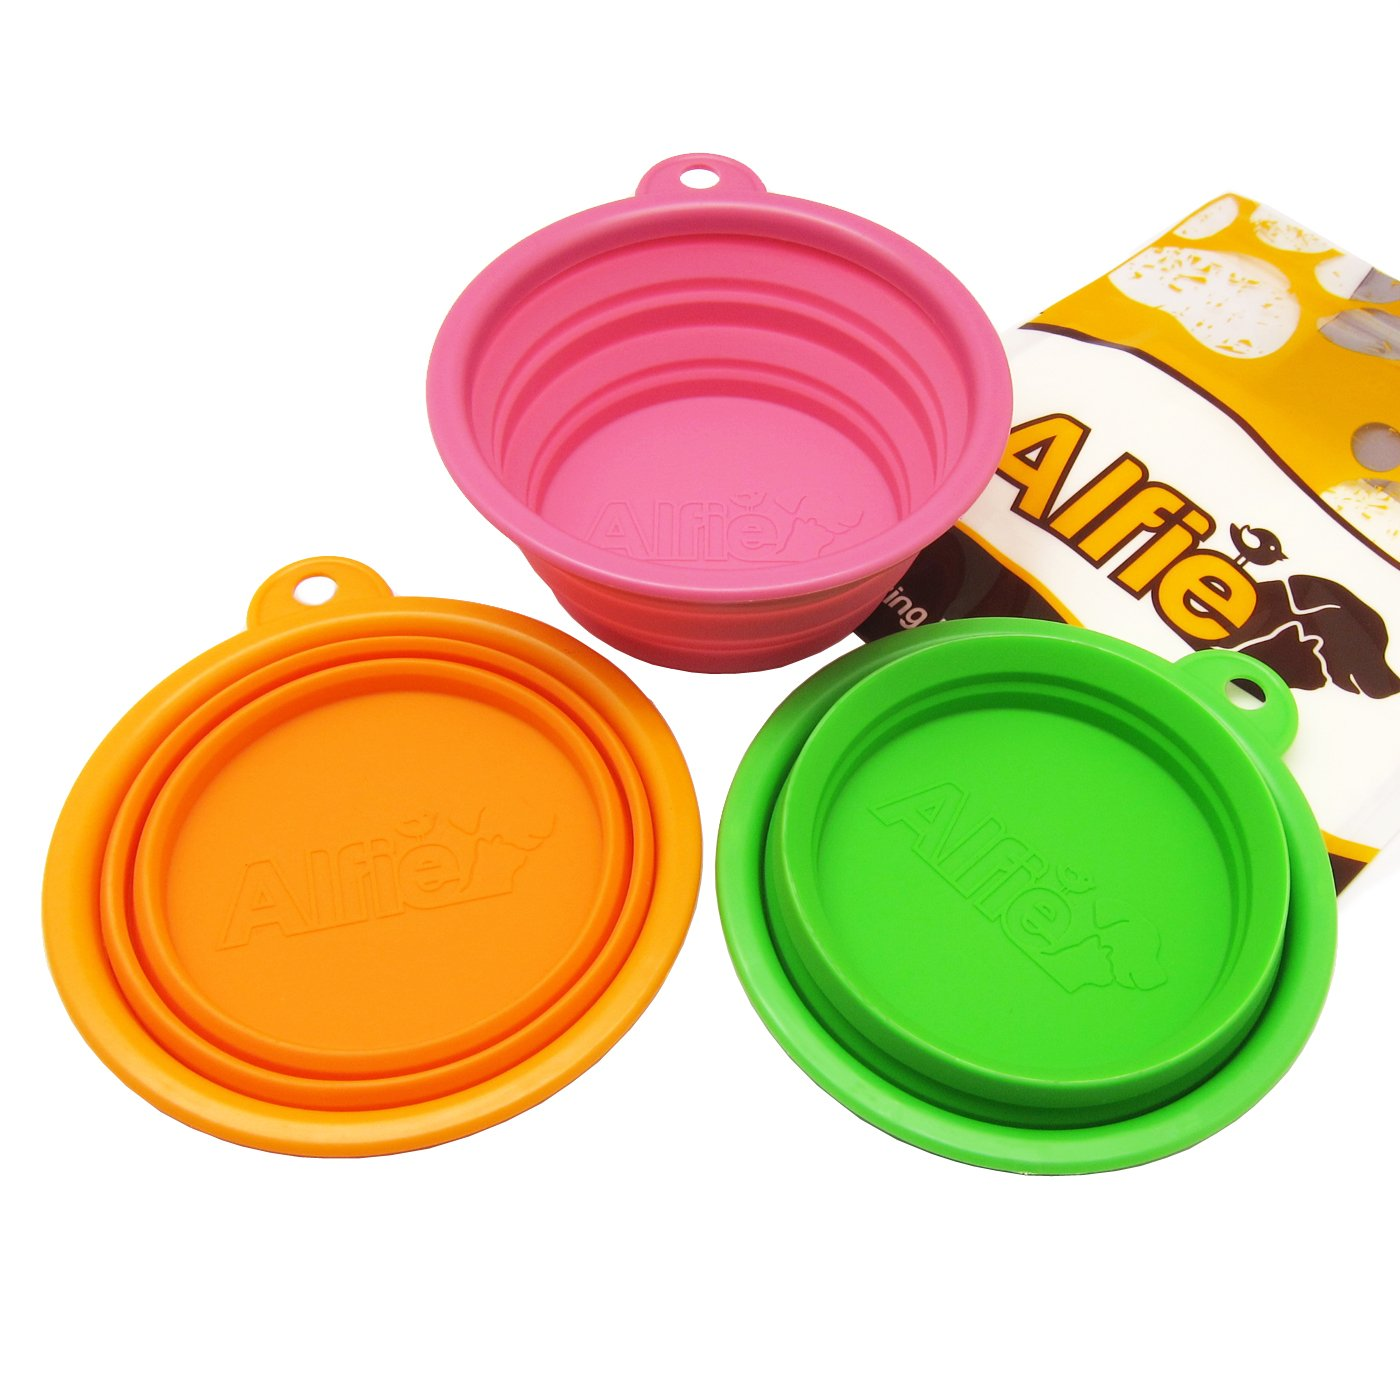 Alfie Pet by Petoga Couture – Set of 3 Ros Silicone Pet Expandable/Collapsible Travel Bowl – Size: 1.5 Cups